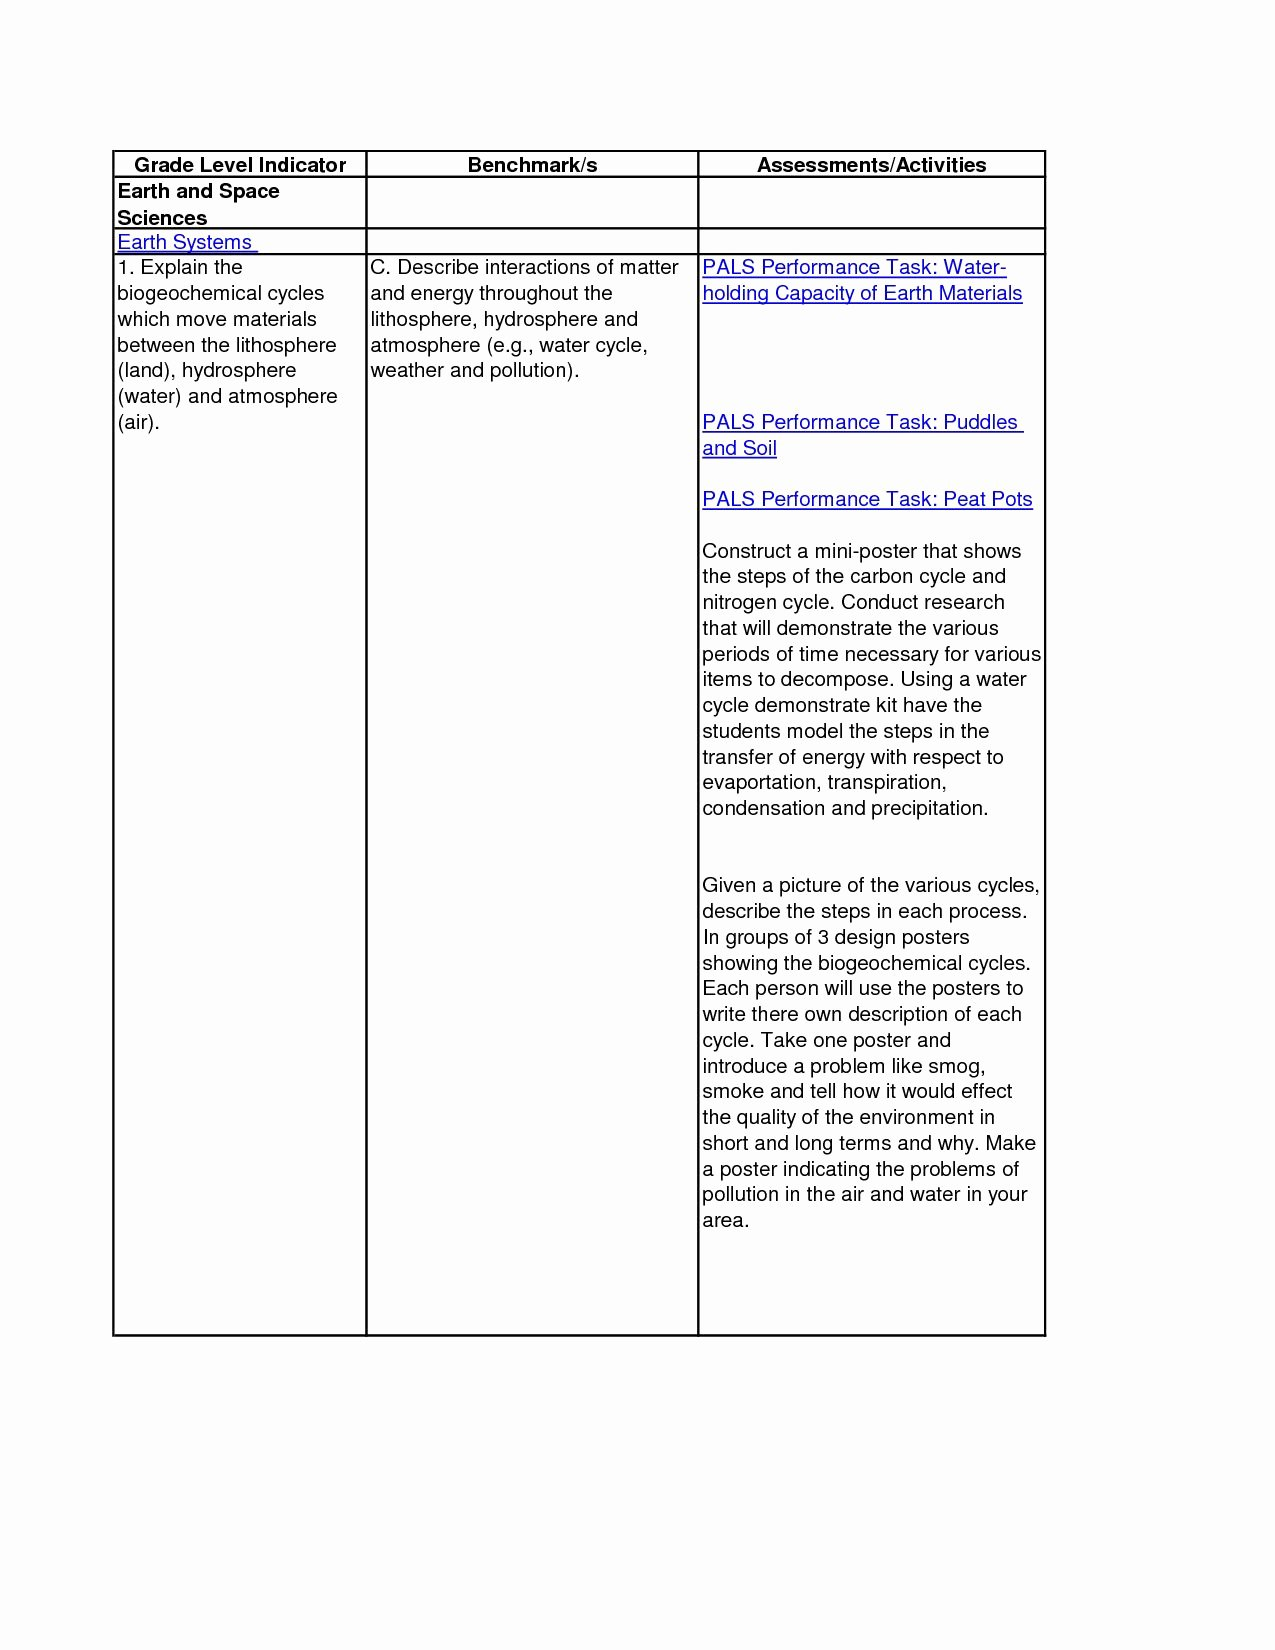 Ecological Succession Worksheet Answers Inspirational Ecological Succession Worksheet Answer Key